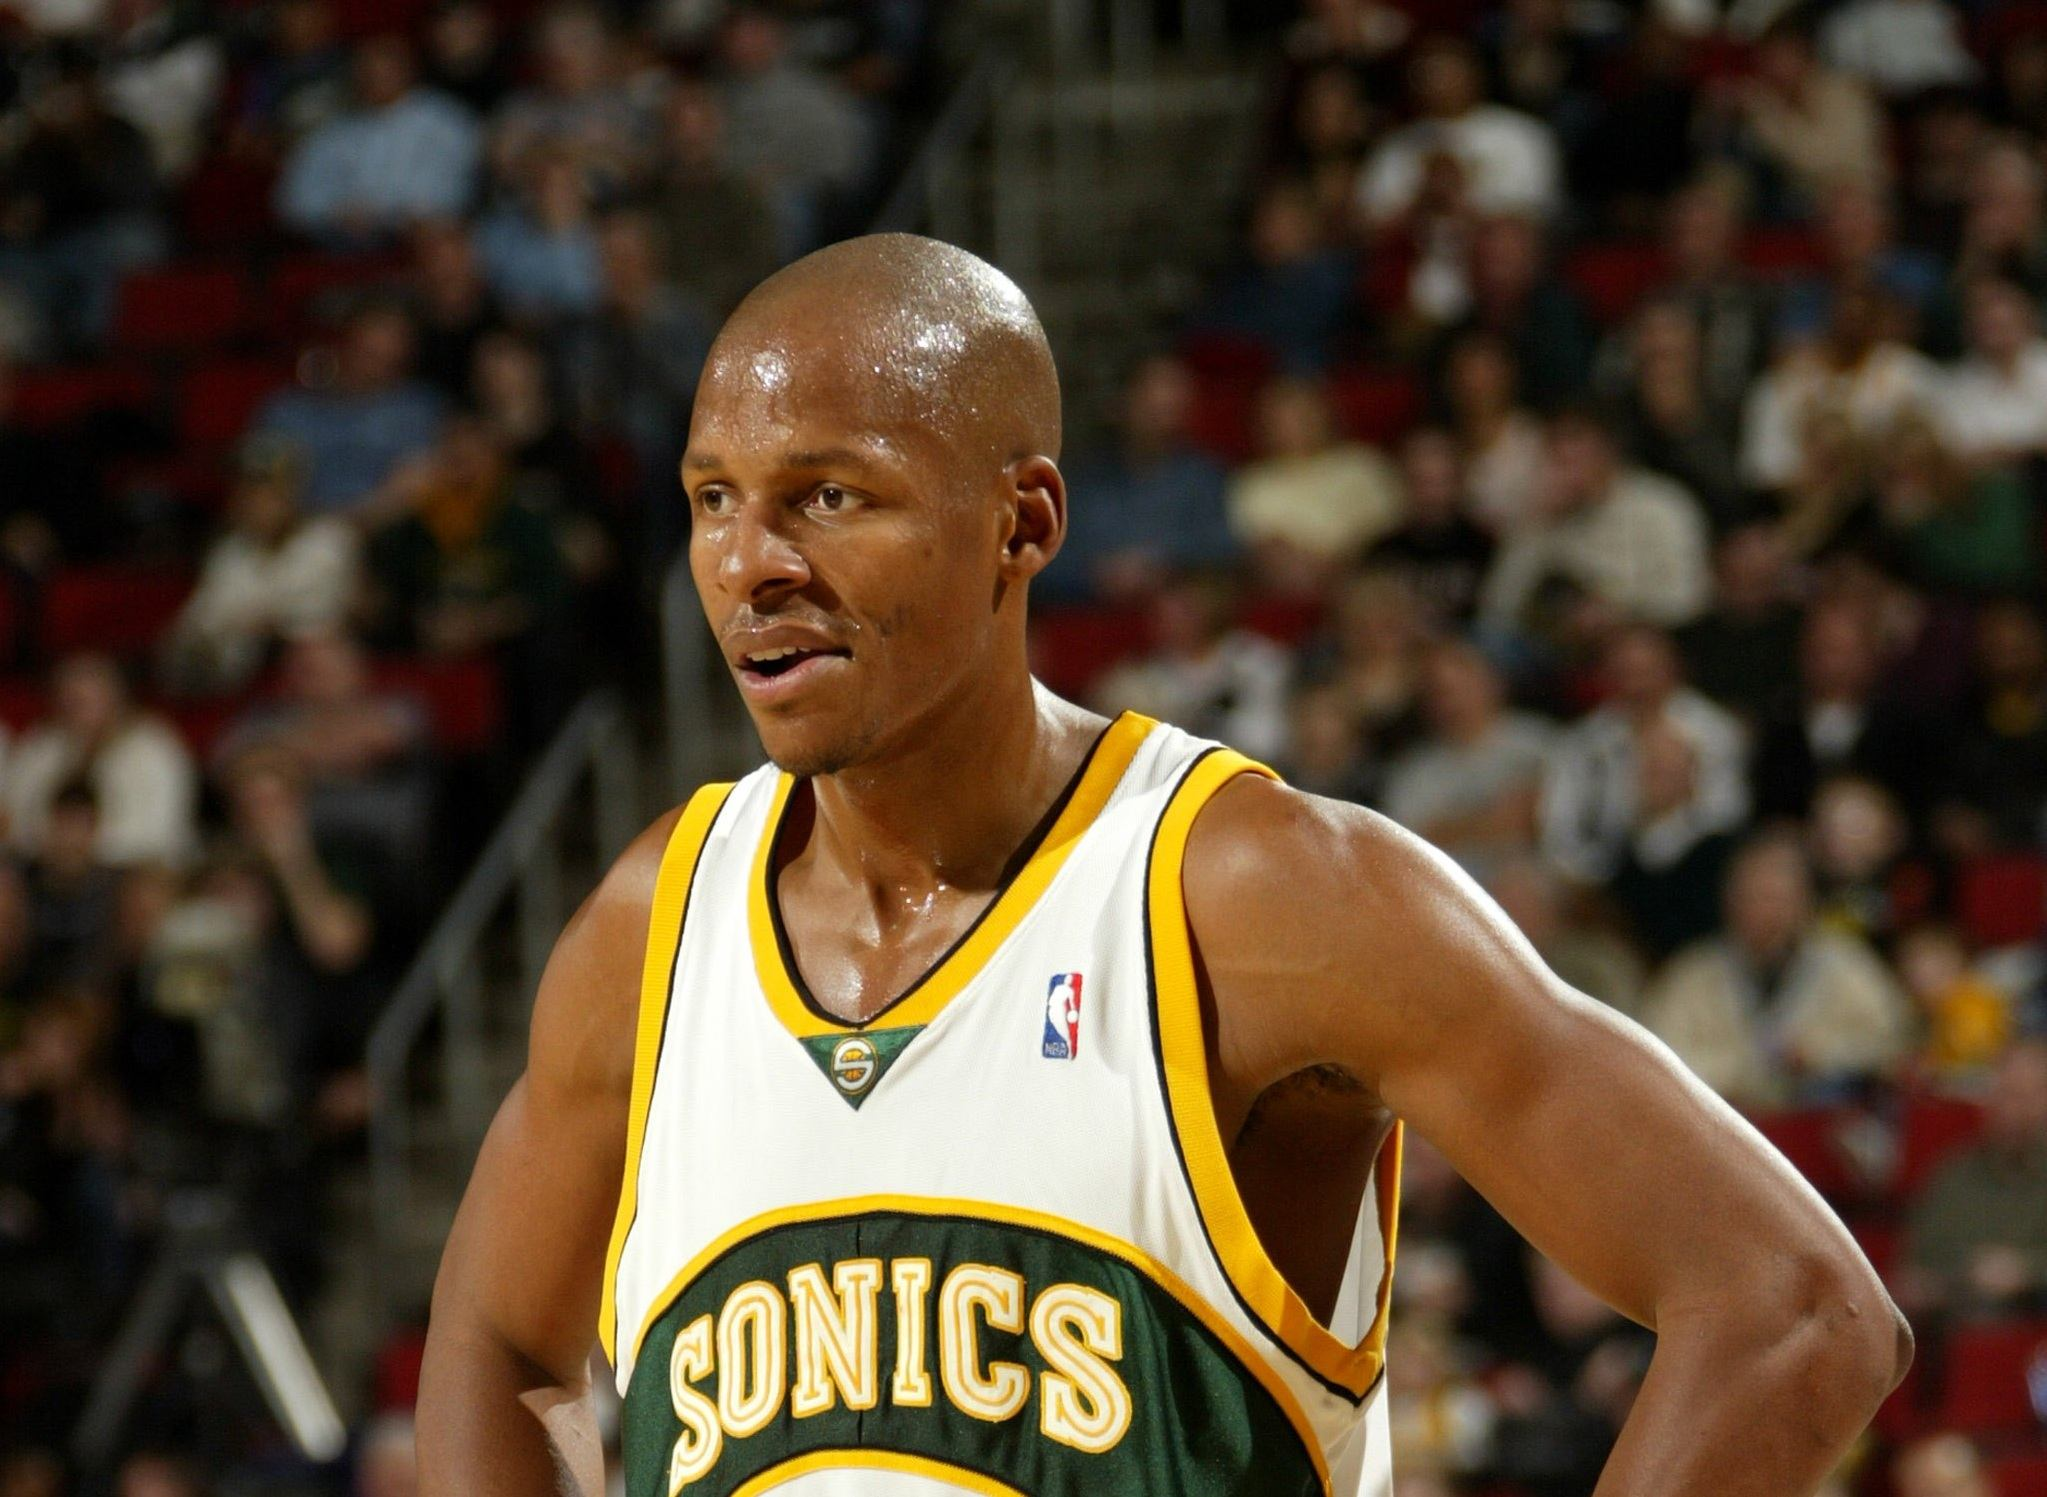 NBA: 10 Greatest Seattle Super Sonics and Oklahoma City Thunder